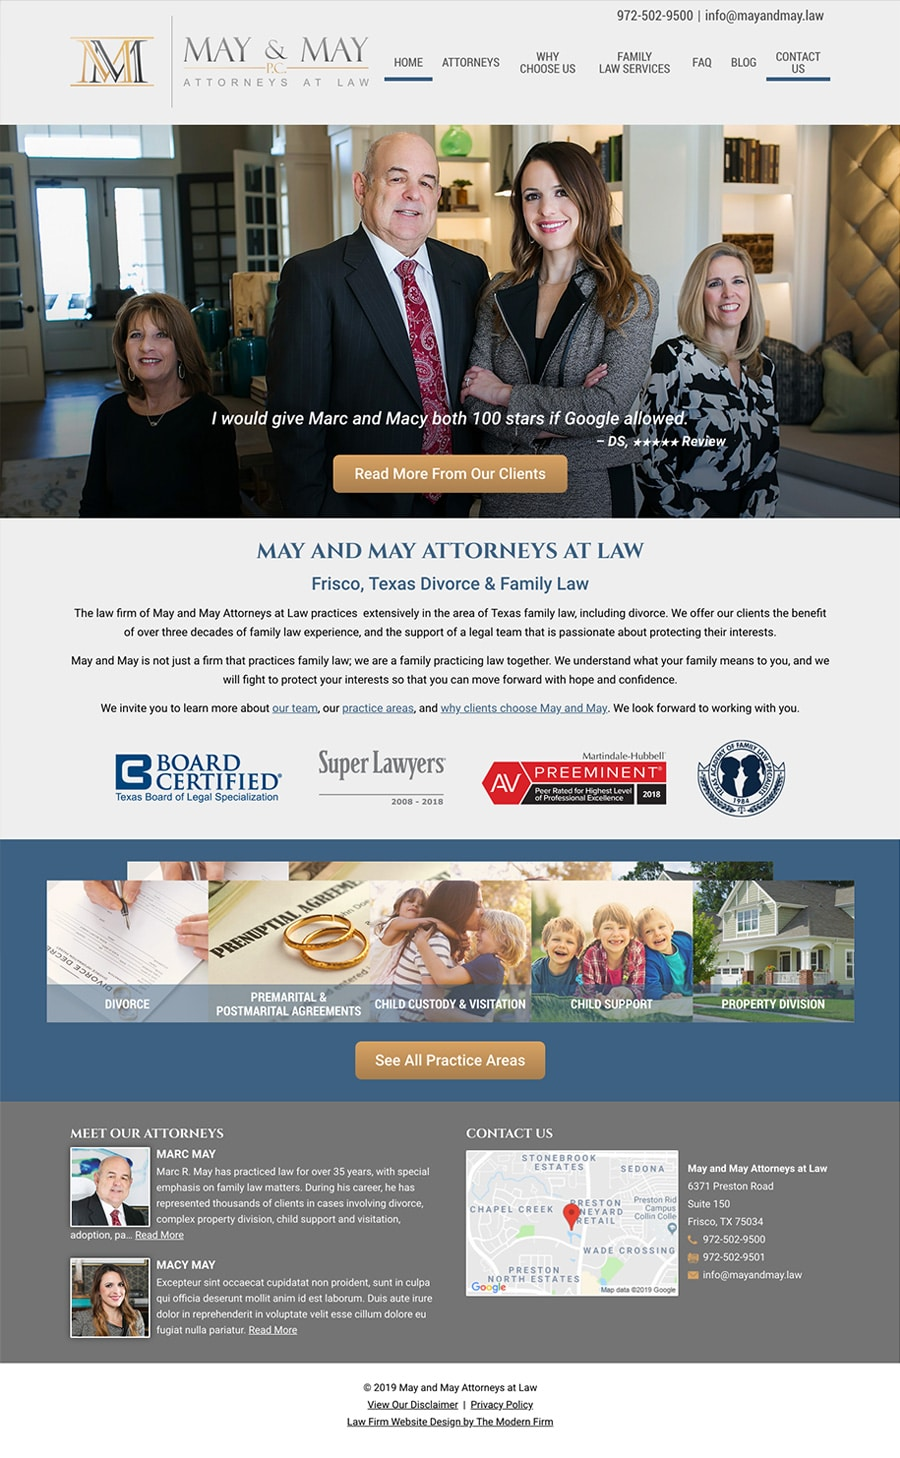 Law Firm Website Design for May and May Attorneys at Law